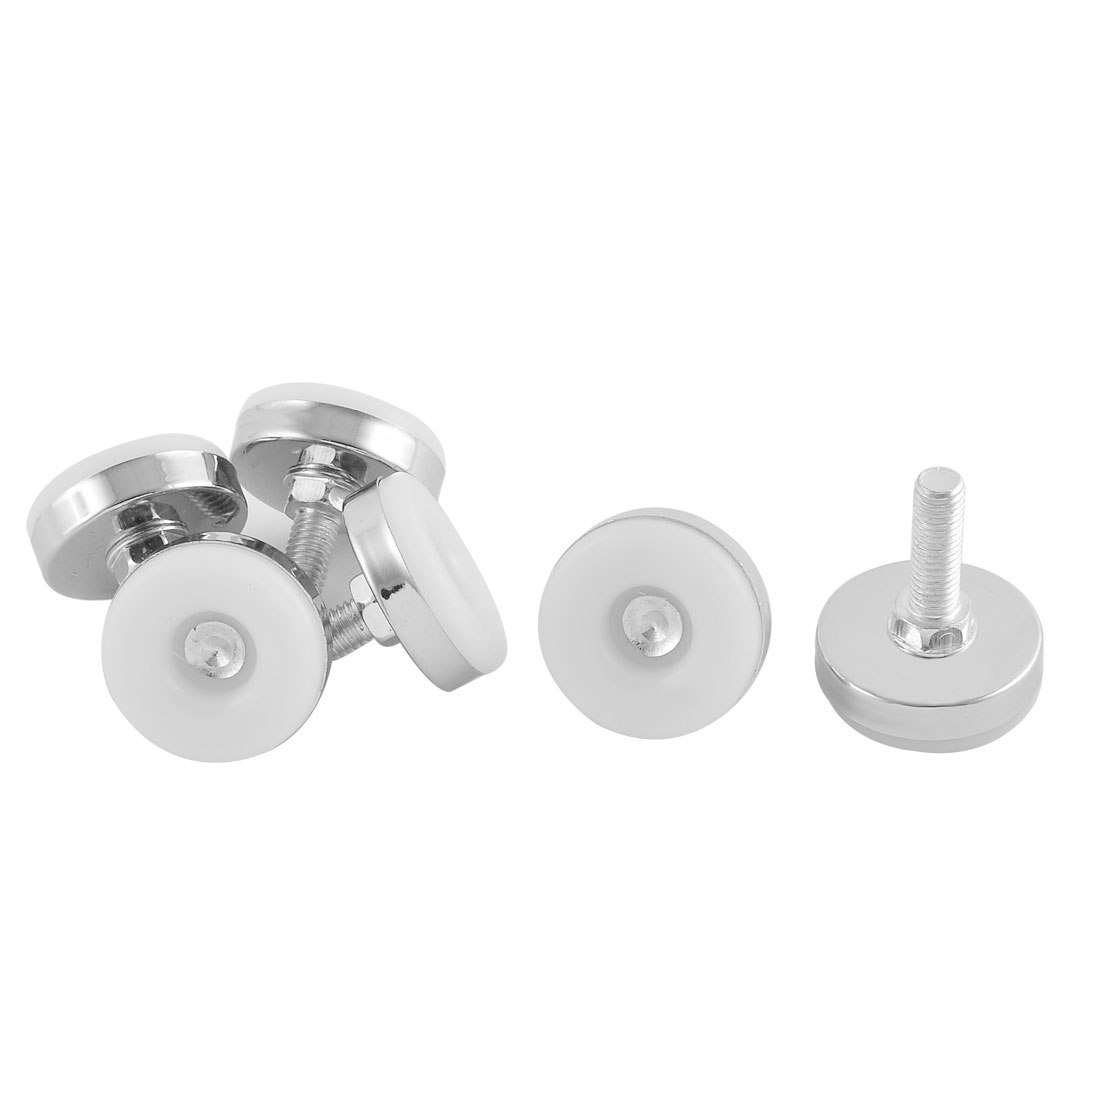 Home Office Adjustable Furniture Glide Leveling Feet White Silver Tone 8mm Thread Dia 6 Pcs